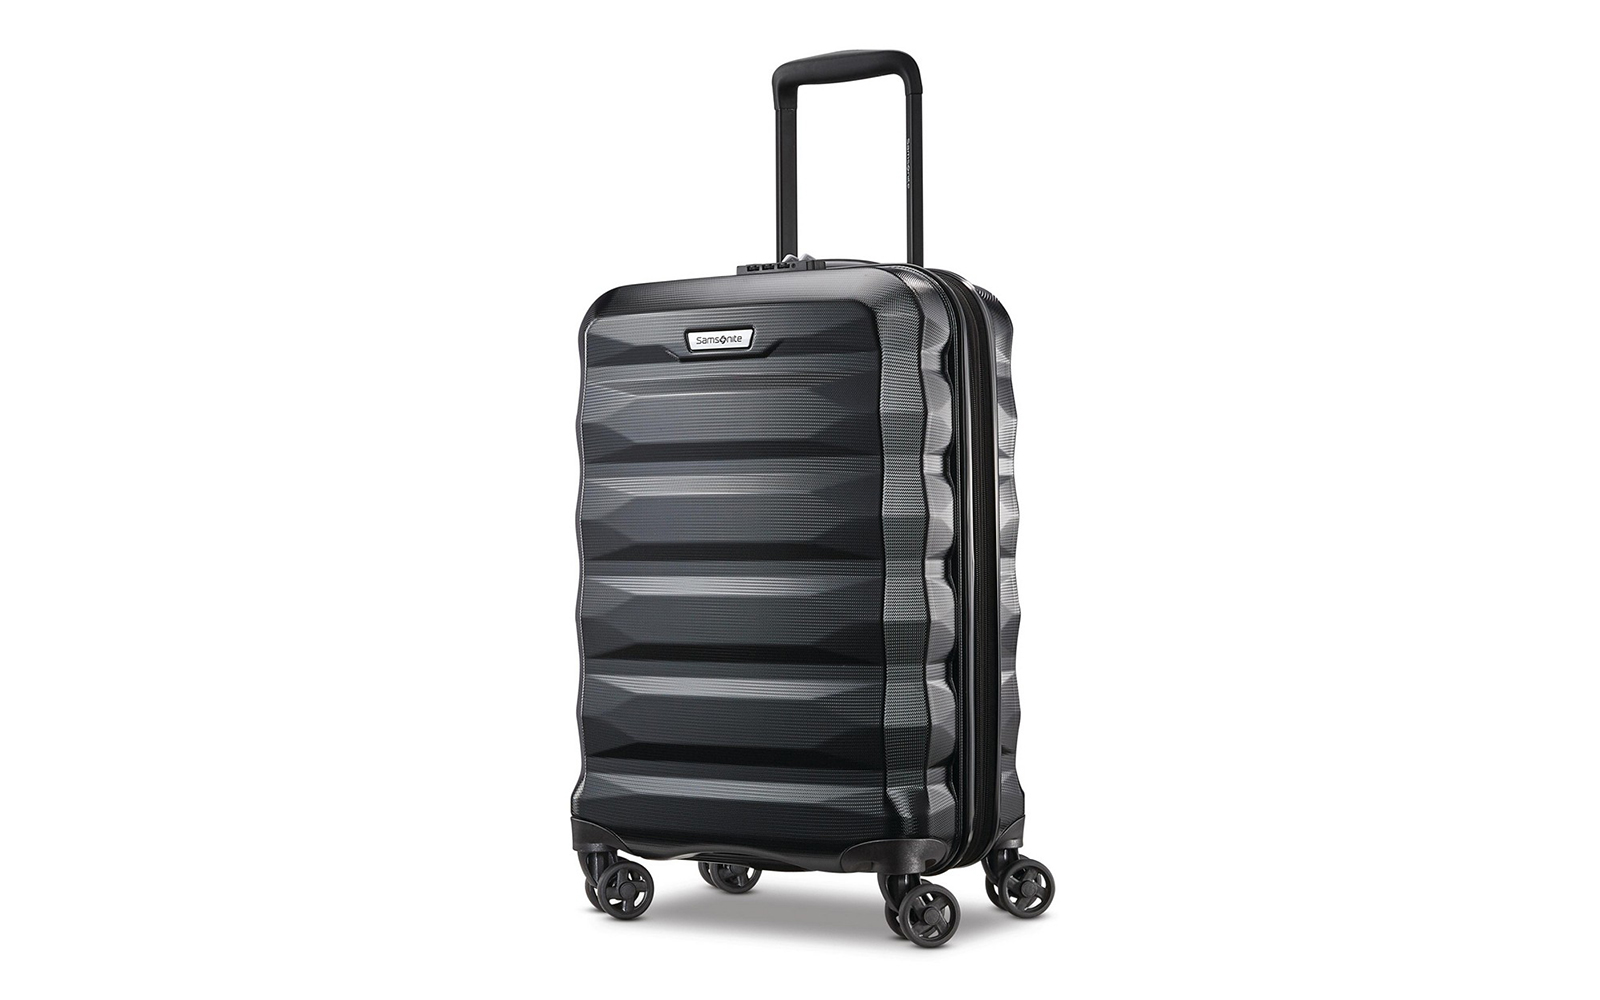 Samsonite Spin Tech 4.0 20